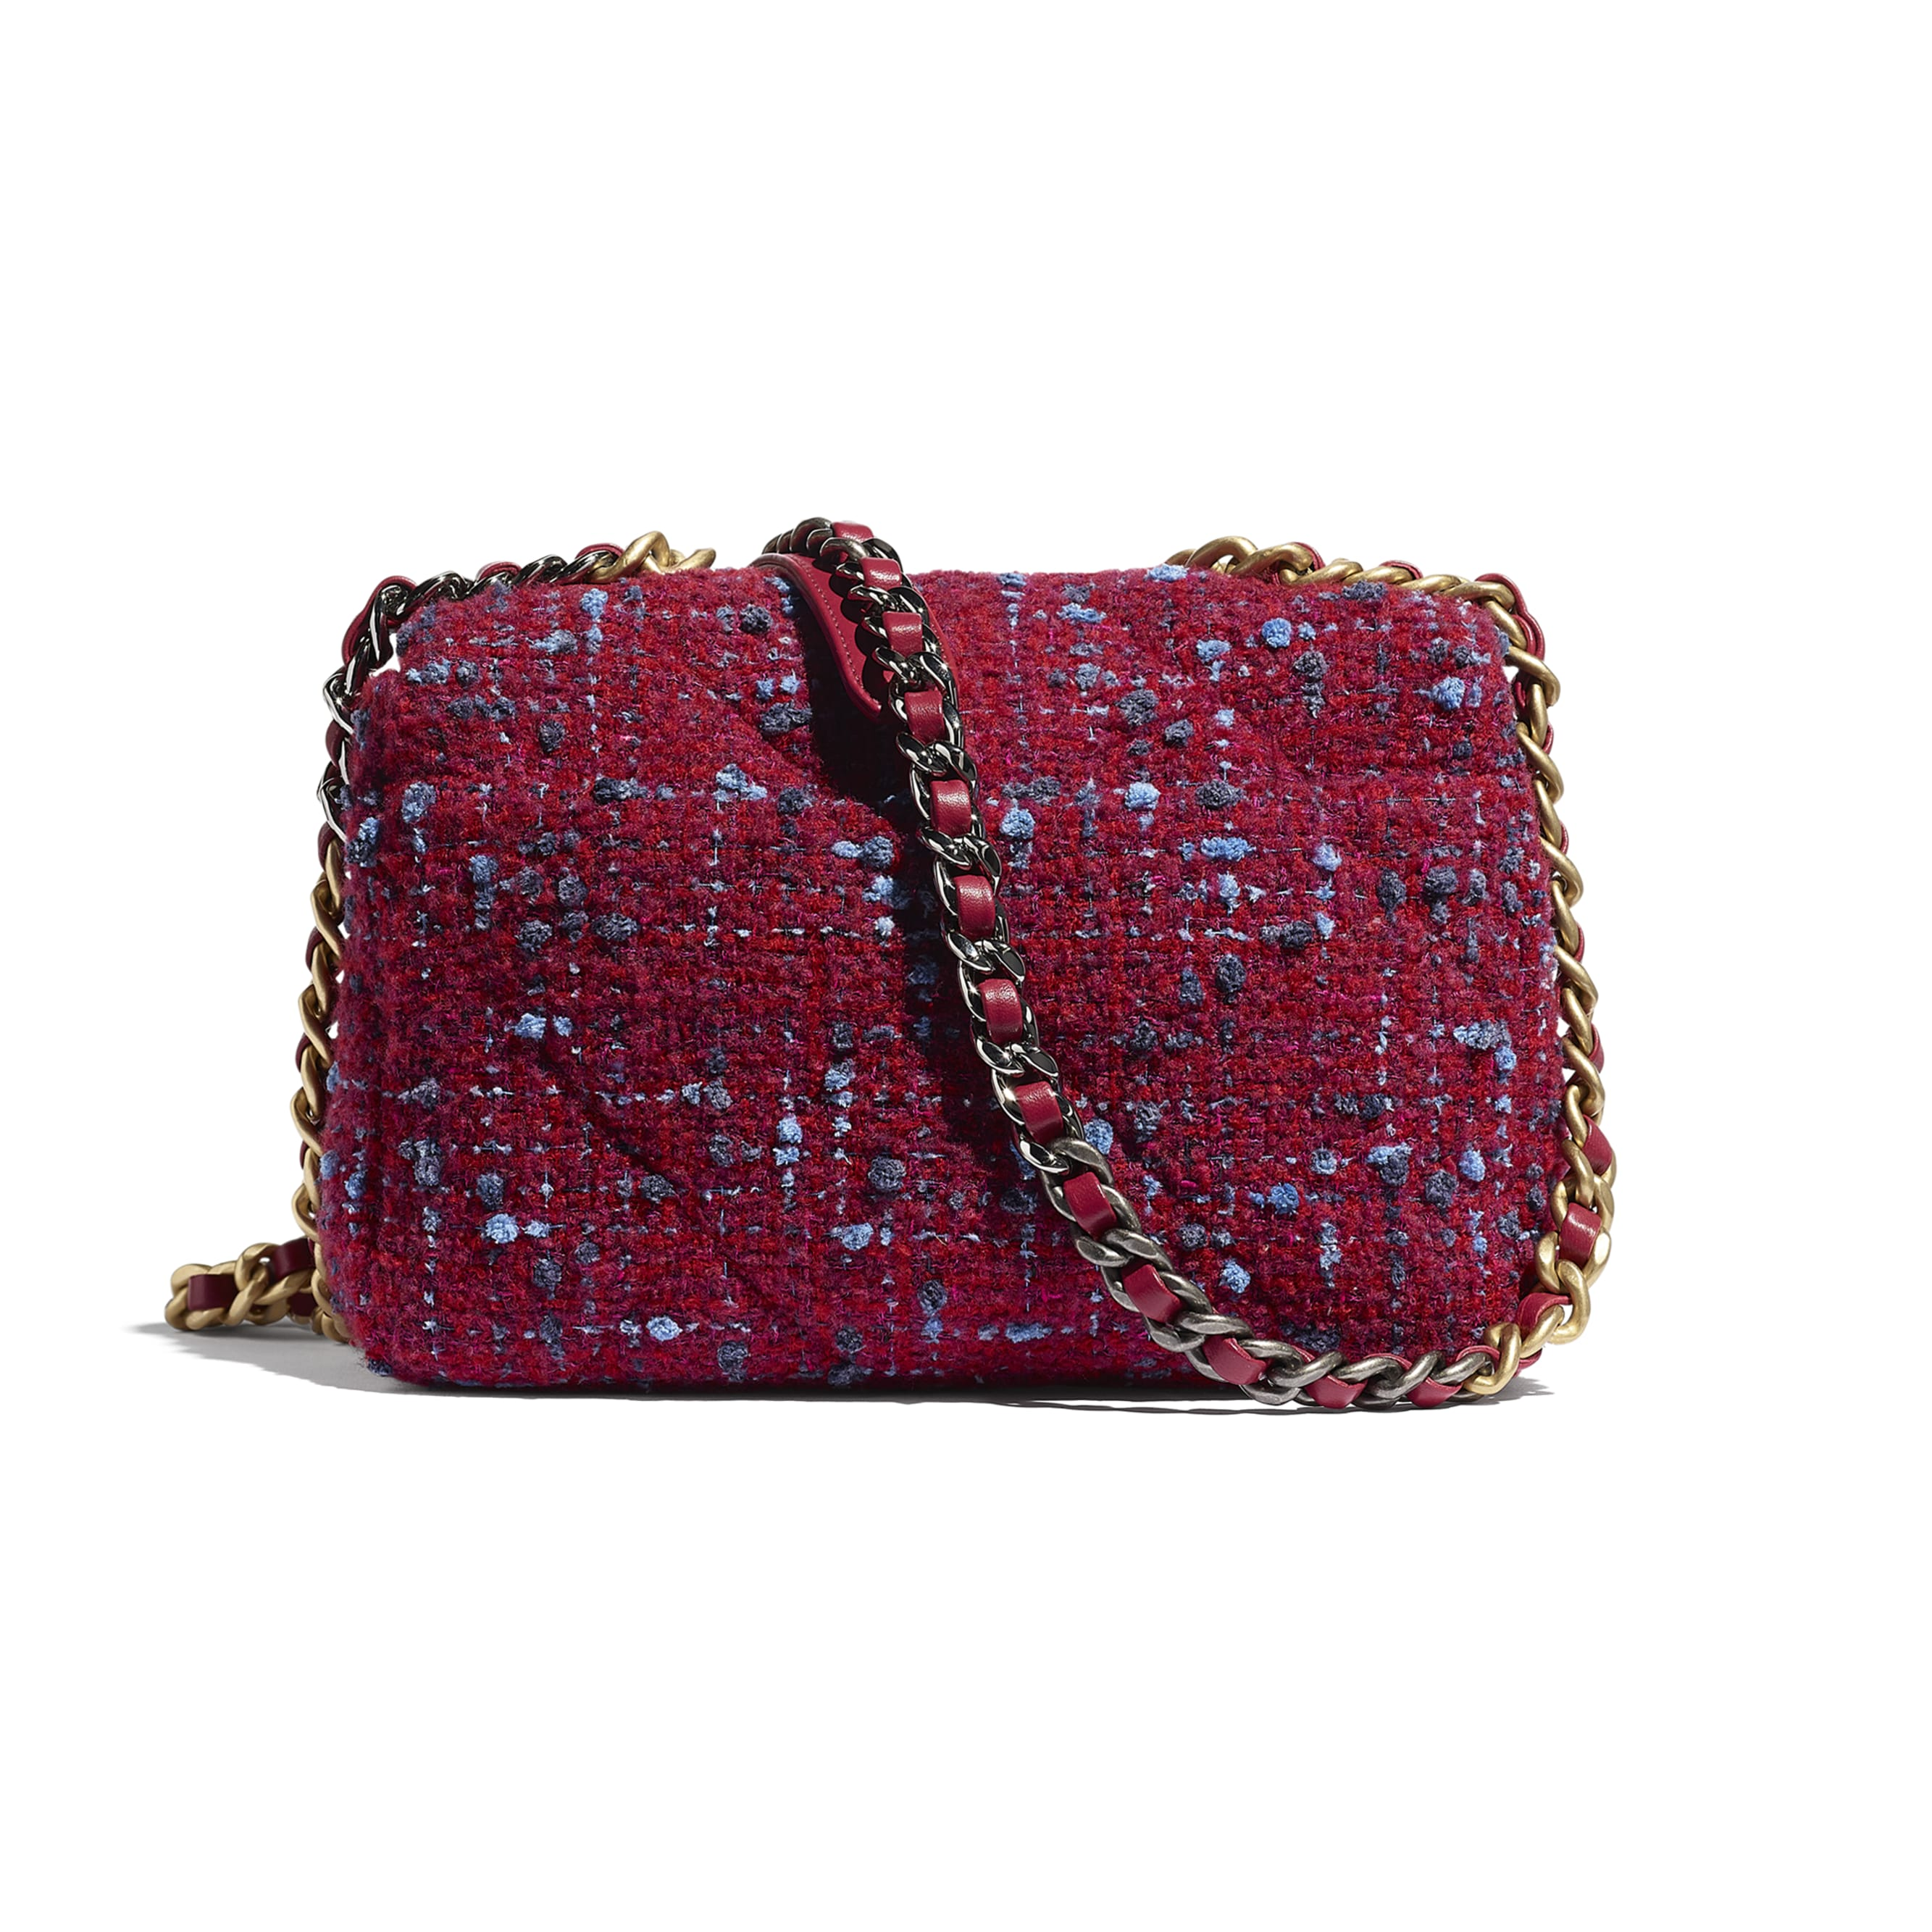 CHANEL 19 Flap Bag - Raspberry Pink - Wool Tweed, Gold-Tone, Silver-Tone & Ruthenium-Finish Metal - CHANEL - Alternative view - see standard sized version